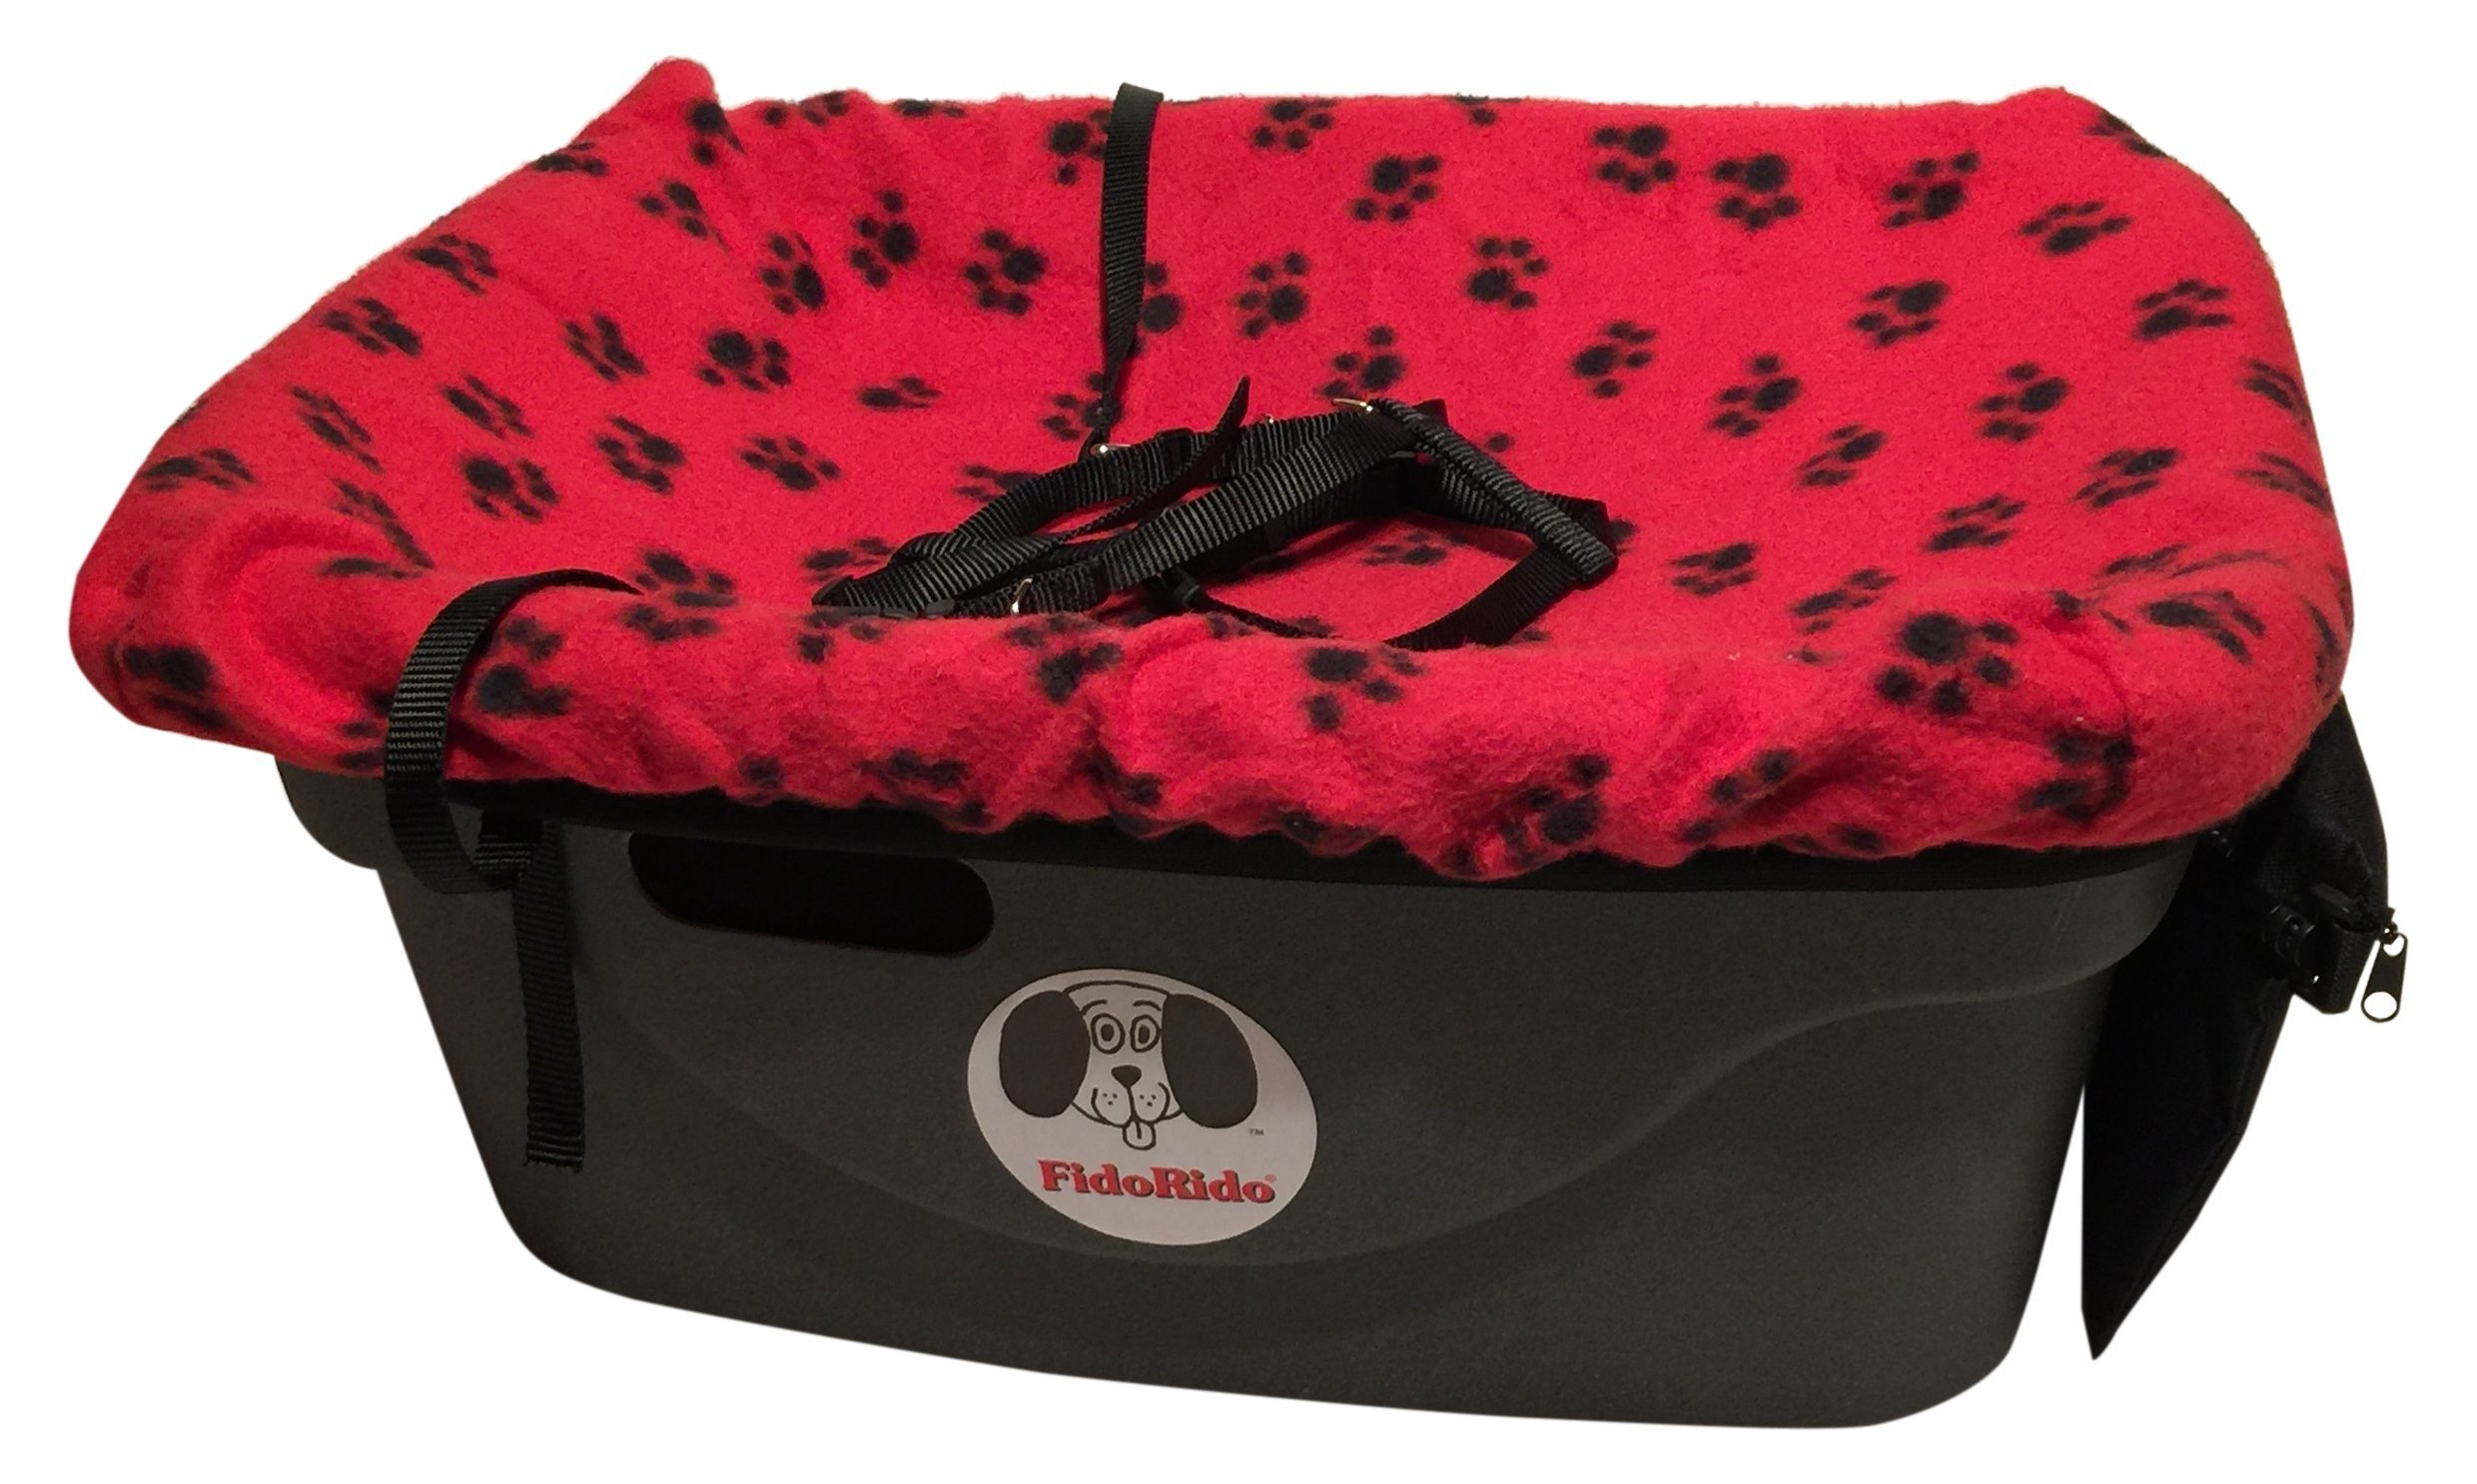 PAWCY FRRB Federico Includes: Booster Seat, Strap Set, Harness Set (1 Ea Size), Pouch and Cover